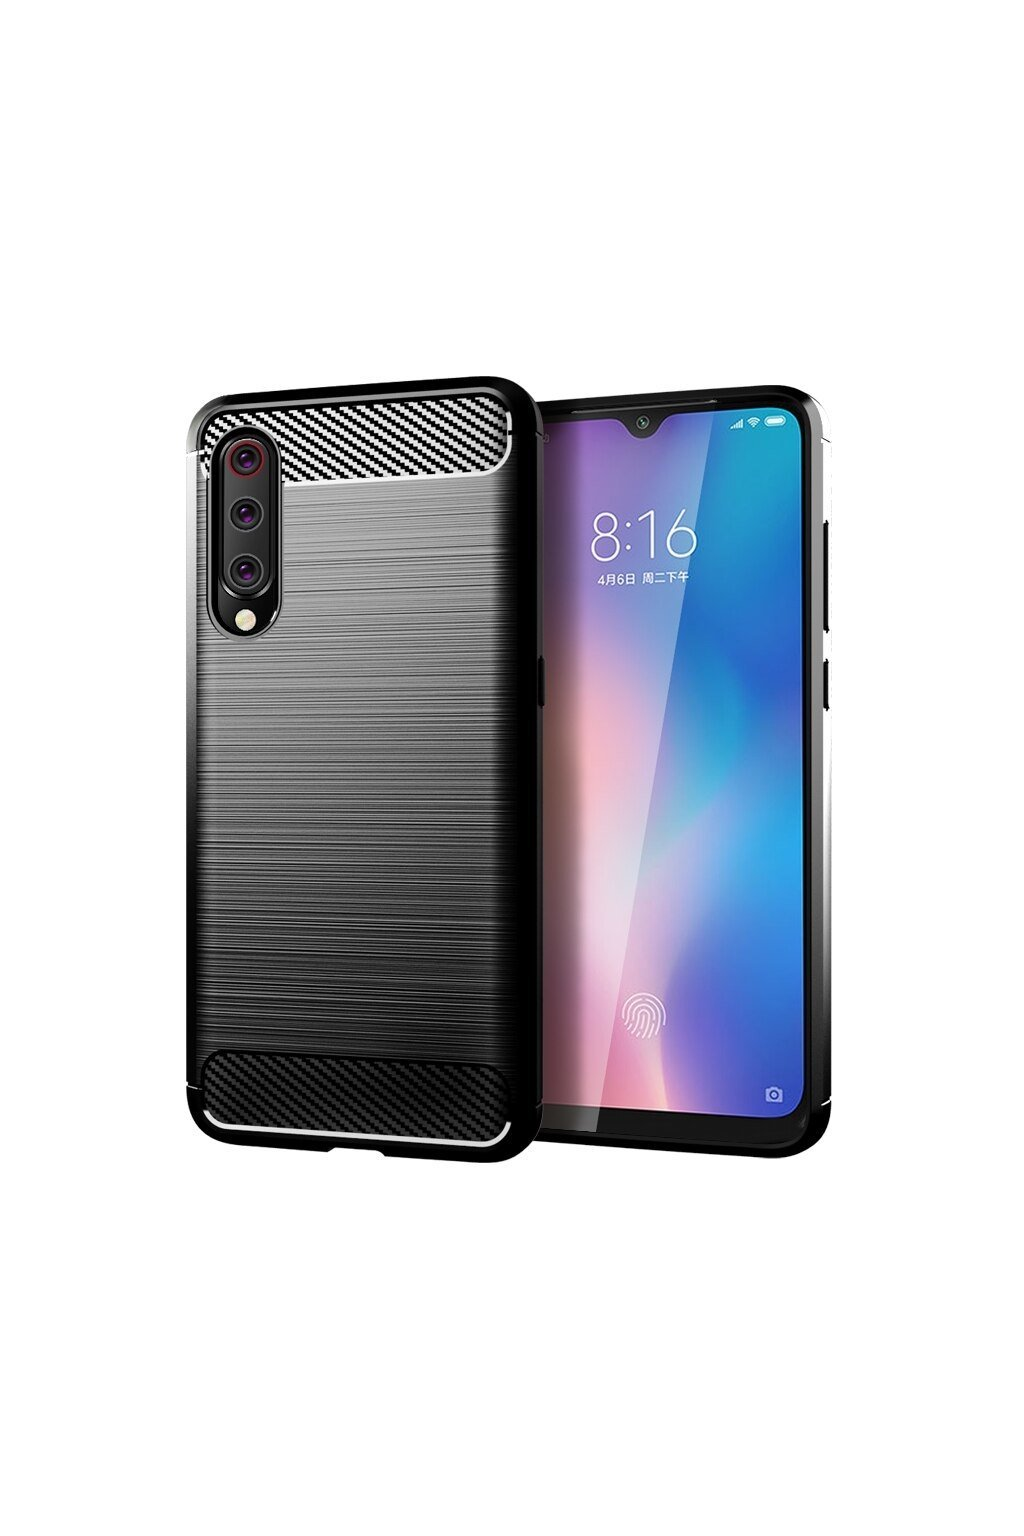 eng pl Carbon Case Flexible Cover TPU Case for Xiaomi Mi 9 Lite Mi CC9 black 52068 1